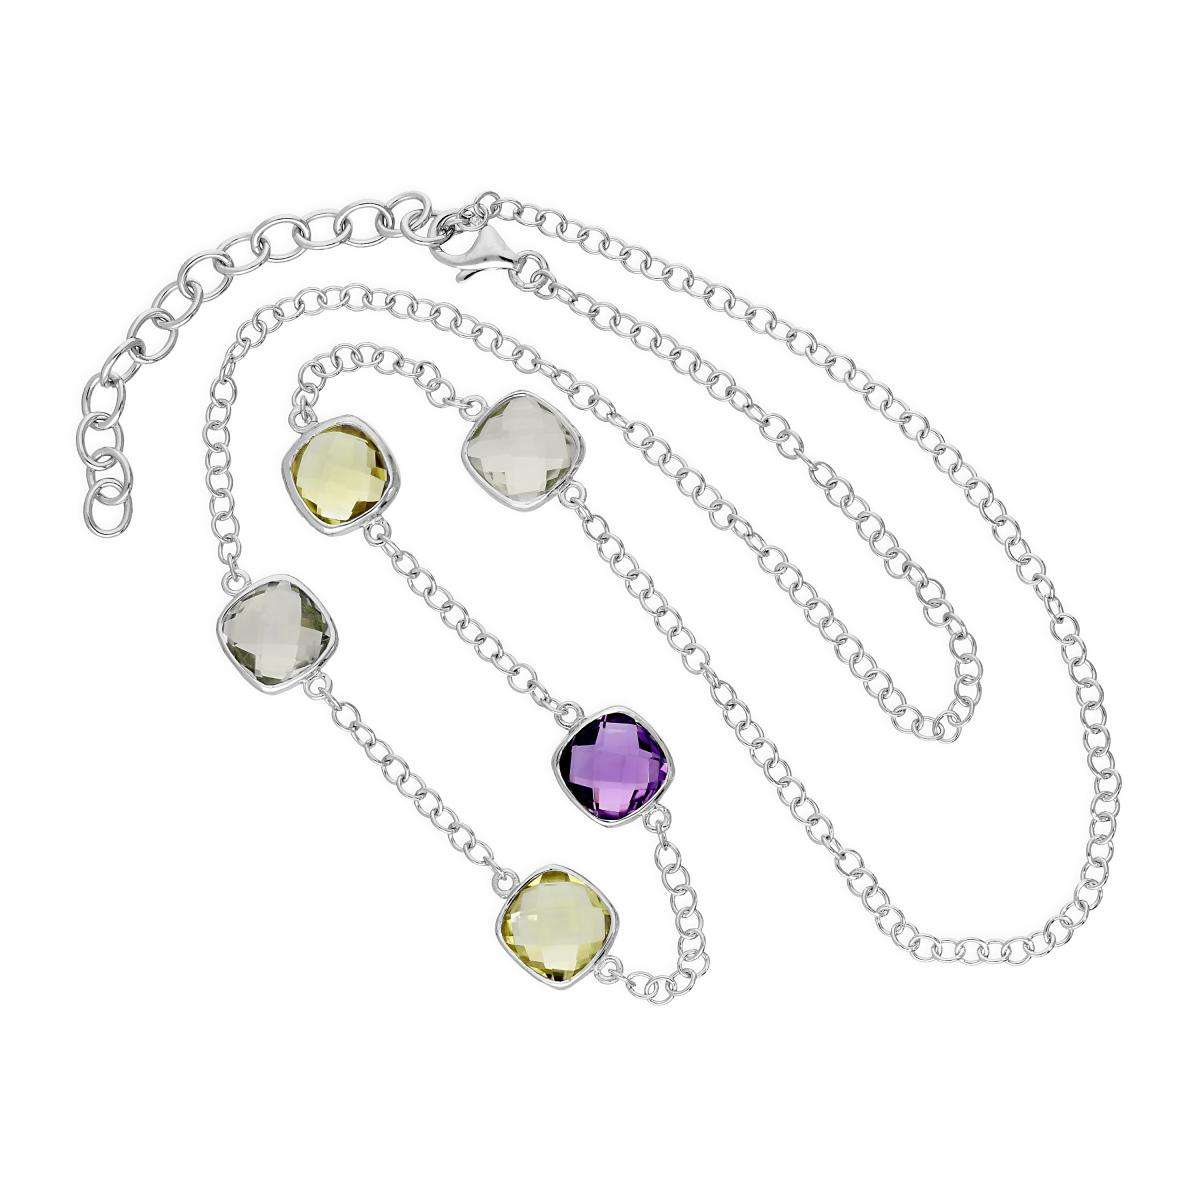 Alterative image for Sterling Silver 18 Inch Necklace w Round Genuine Amethyst & Green Amethyst